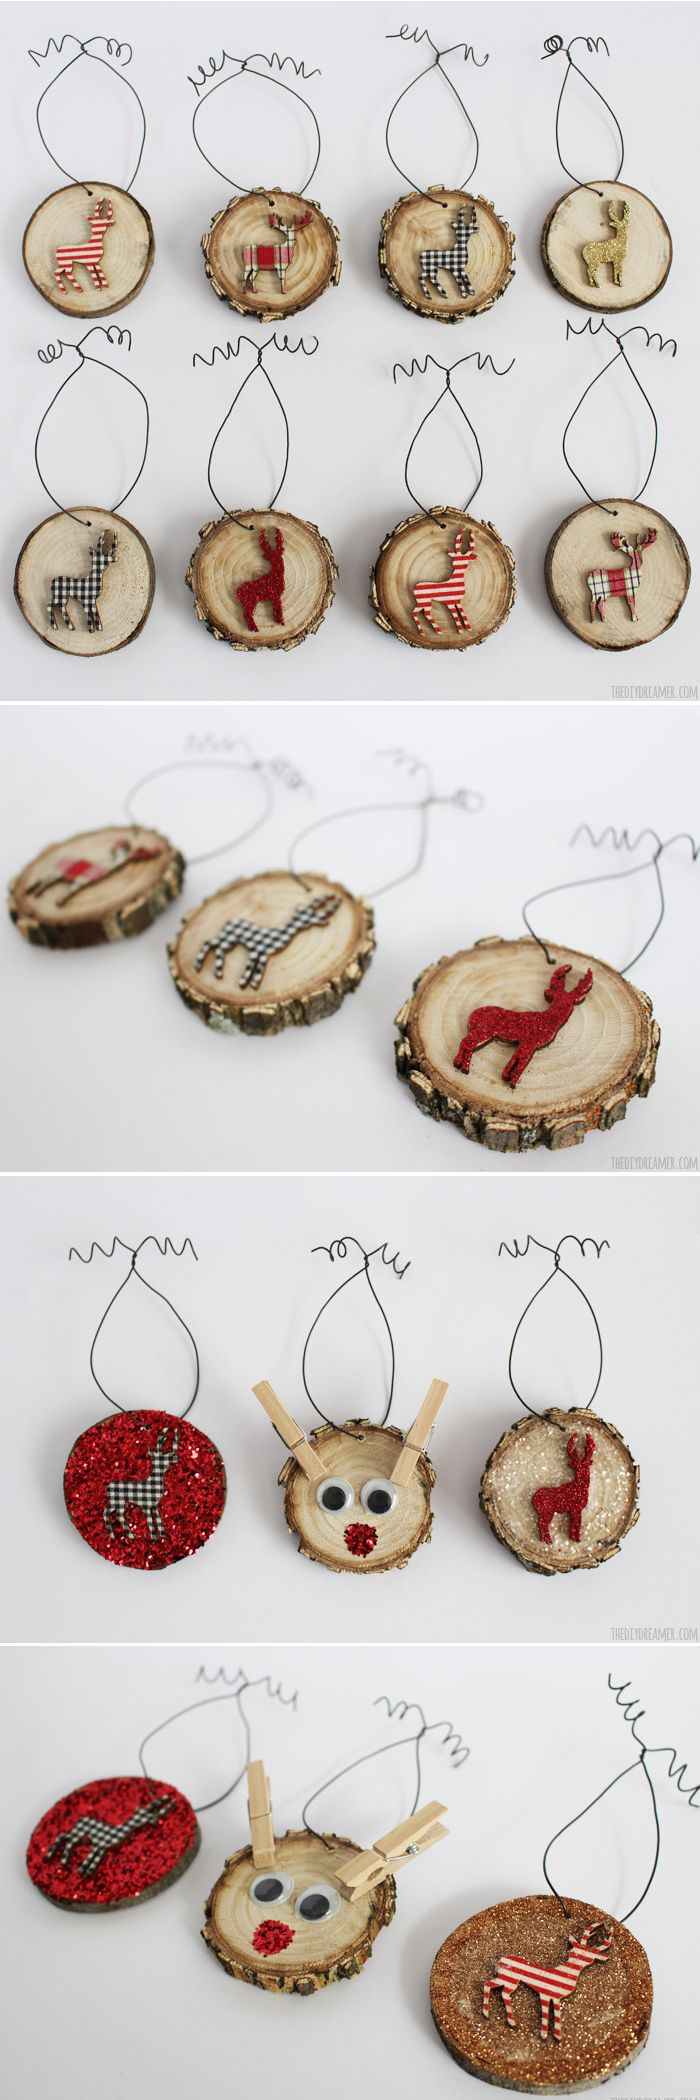 Rustic Christmas Ornaments Best 25 Wooden Christmas Ornaments Ideas On Pinterest Wooden